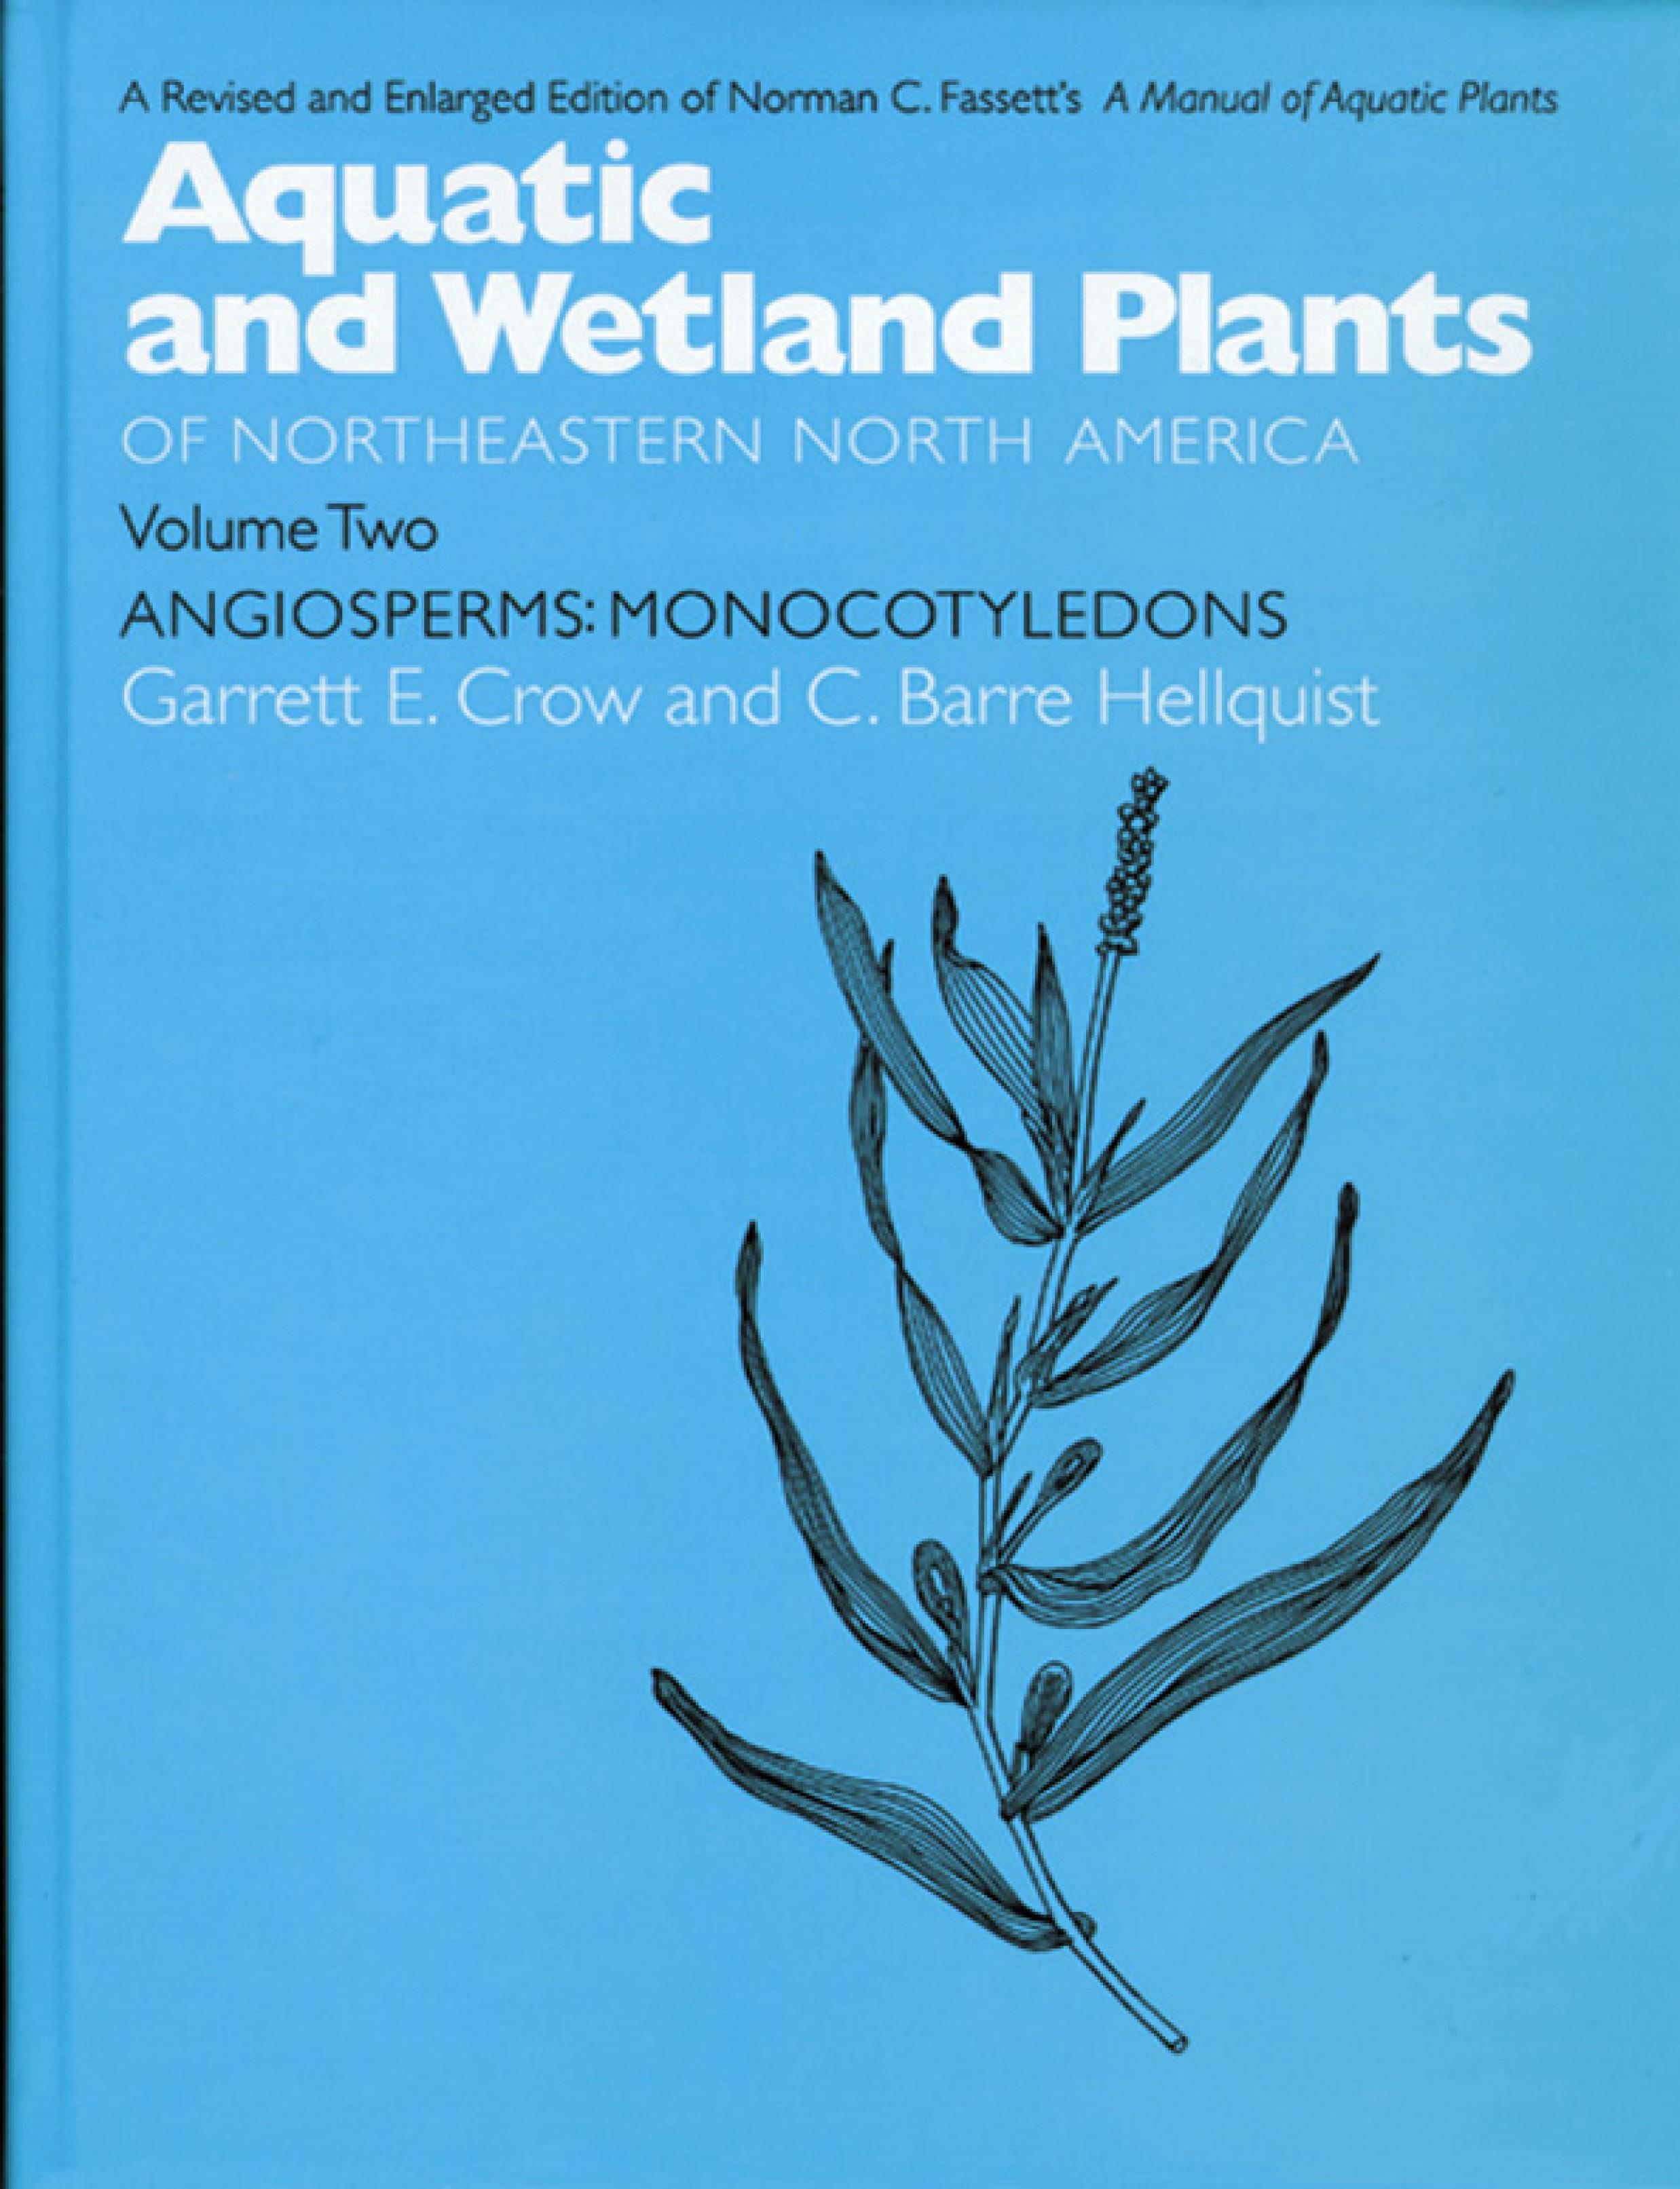 Aquatic and Wetland Plants of Northeastern North America, Volume II: A Revised and Enlarged Edition of Norman C. Fassett's A Manual of Aquatic Plants, EB9780299162832